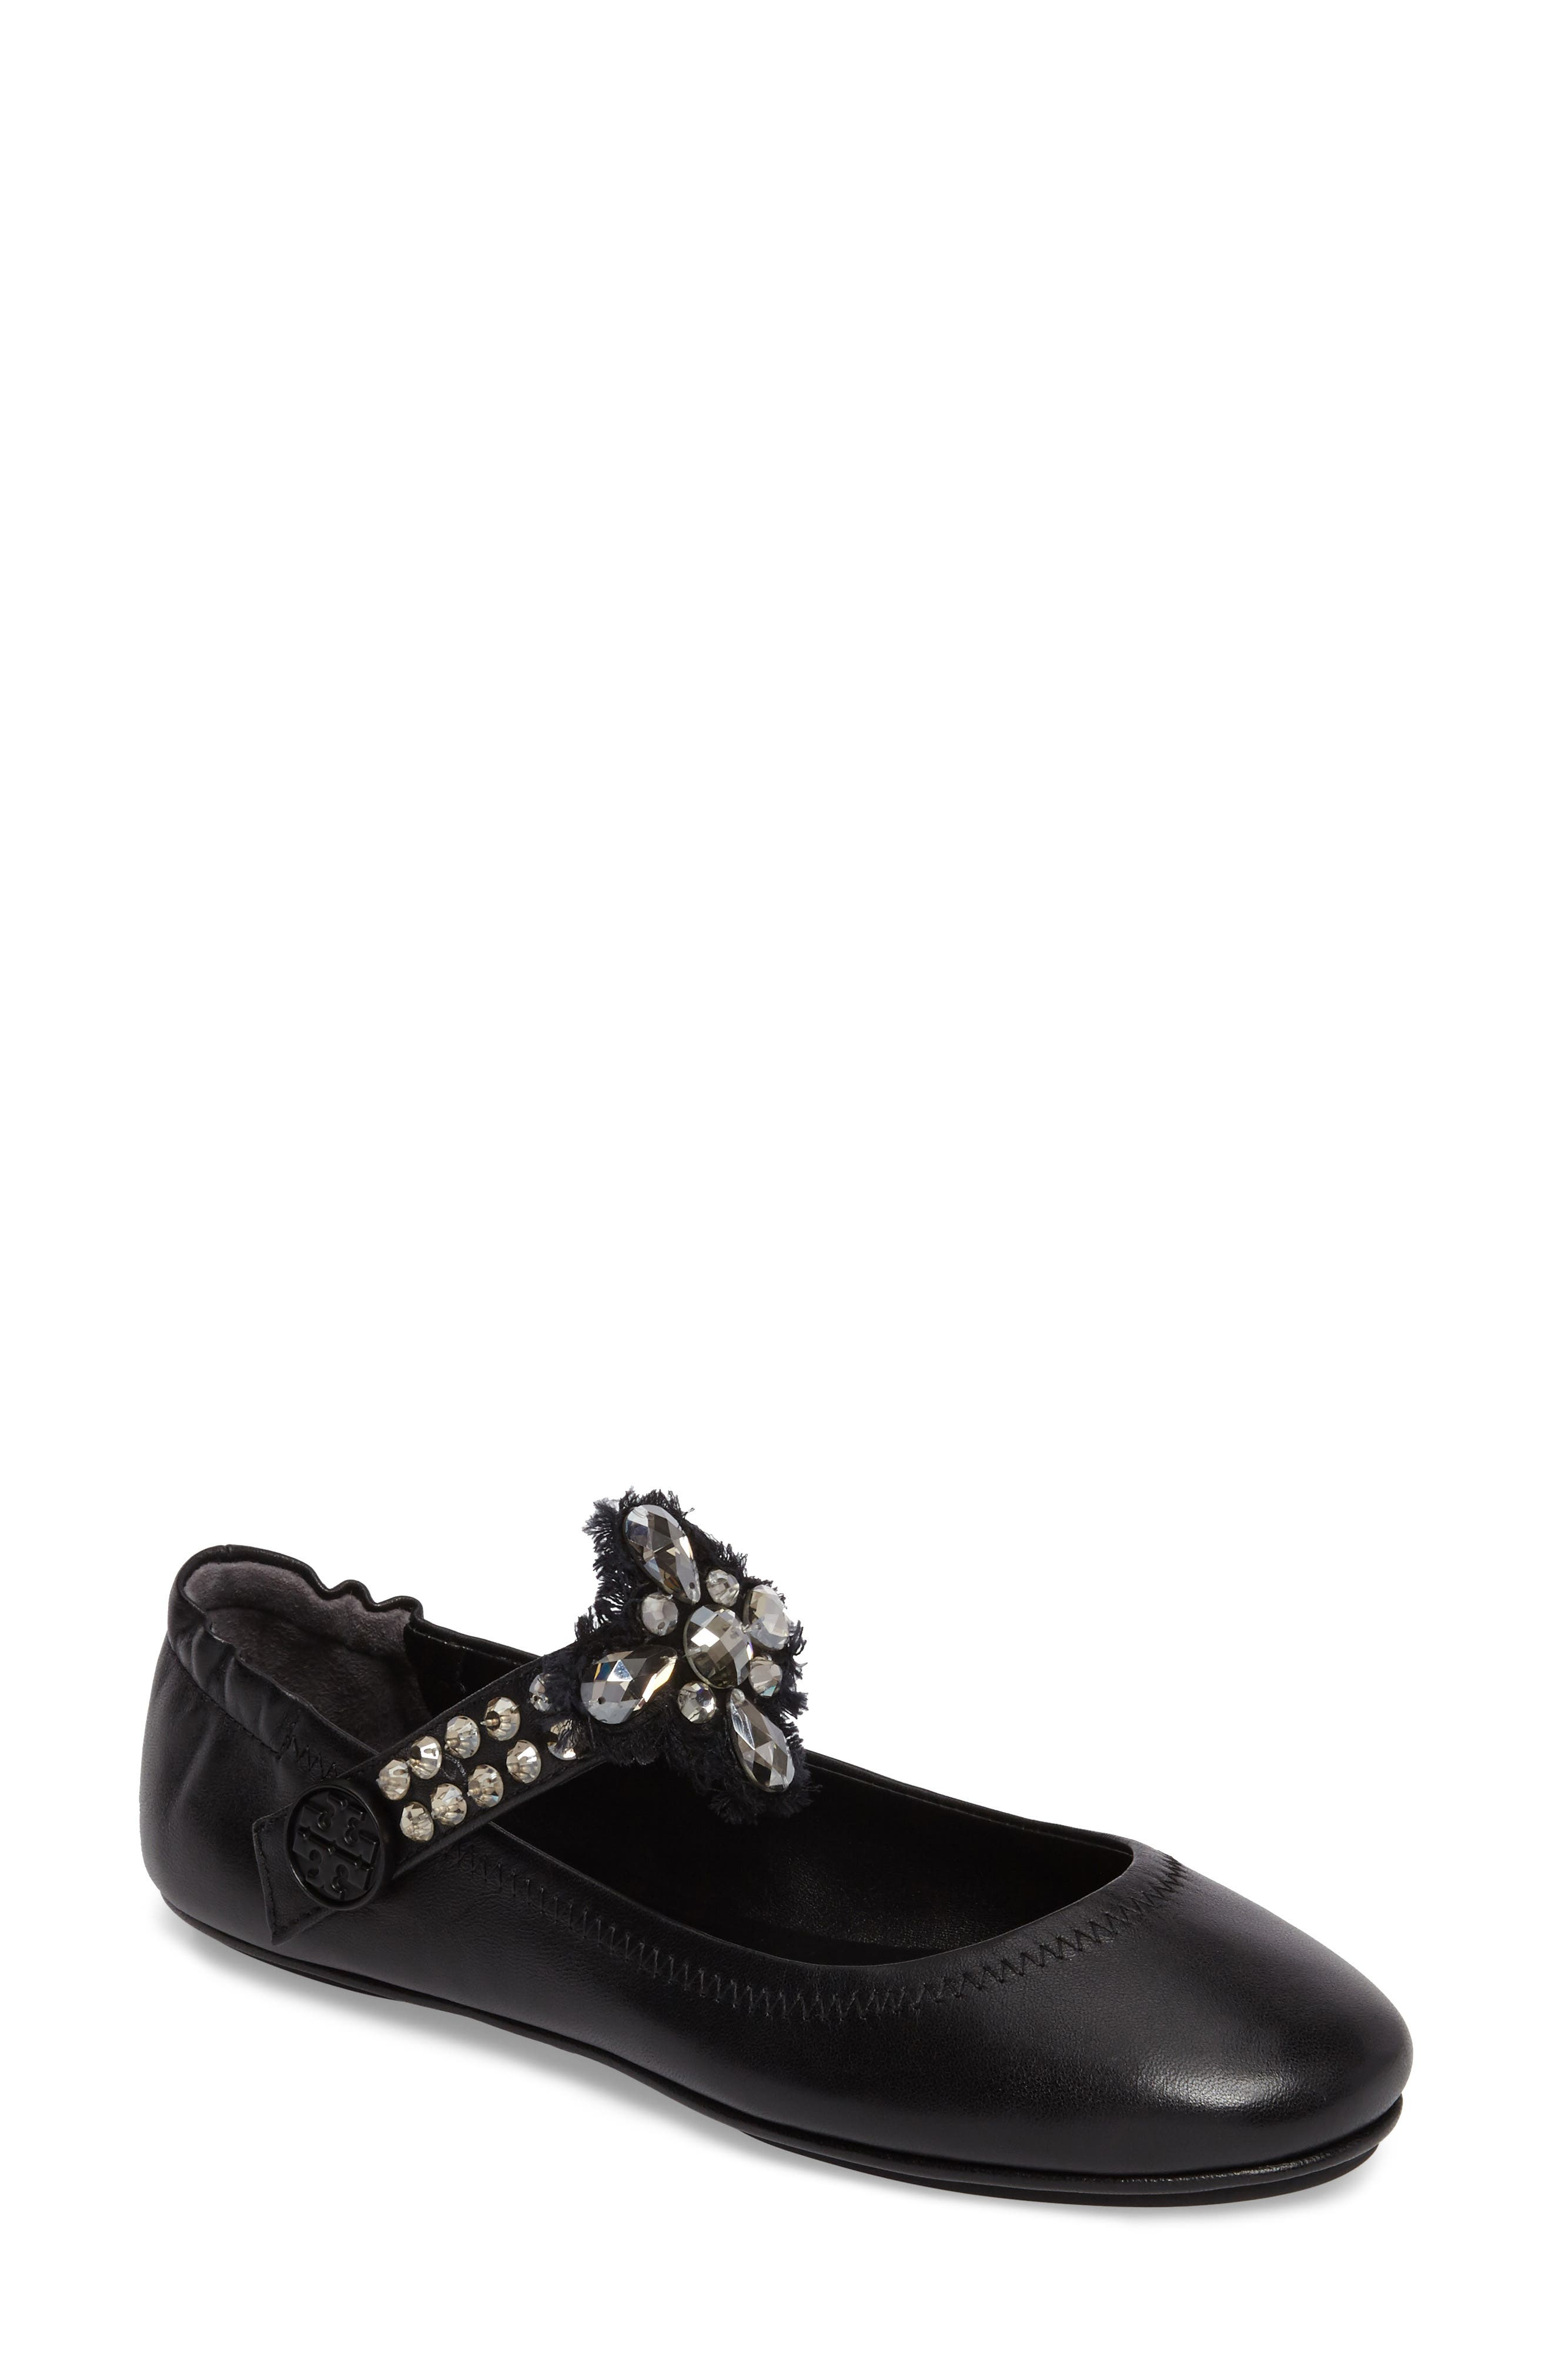 Minnie Embellished Convertible Strap Ballet Flat,                             Main thumbnail 1, color,                             Black/ Clear